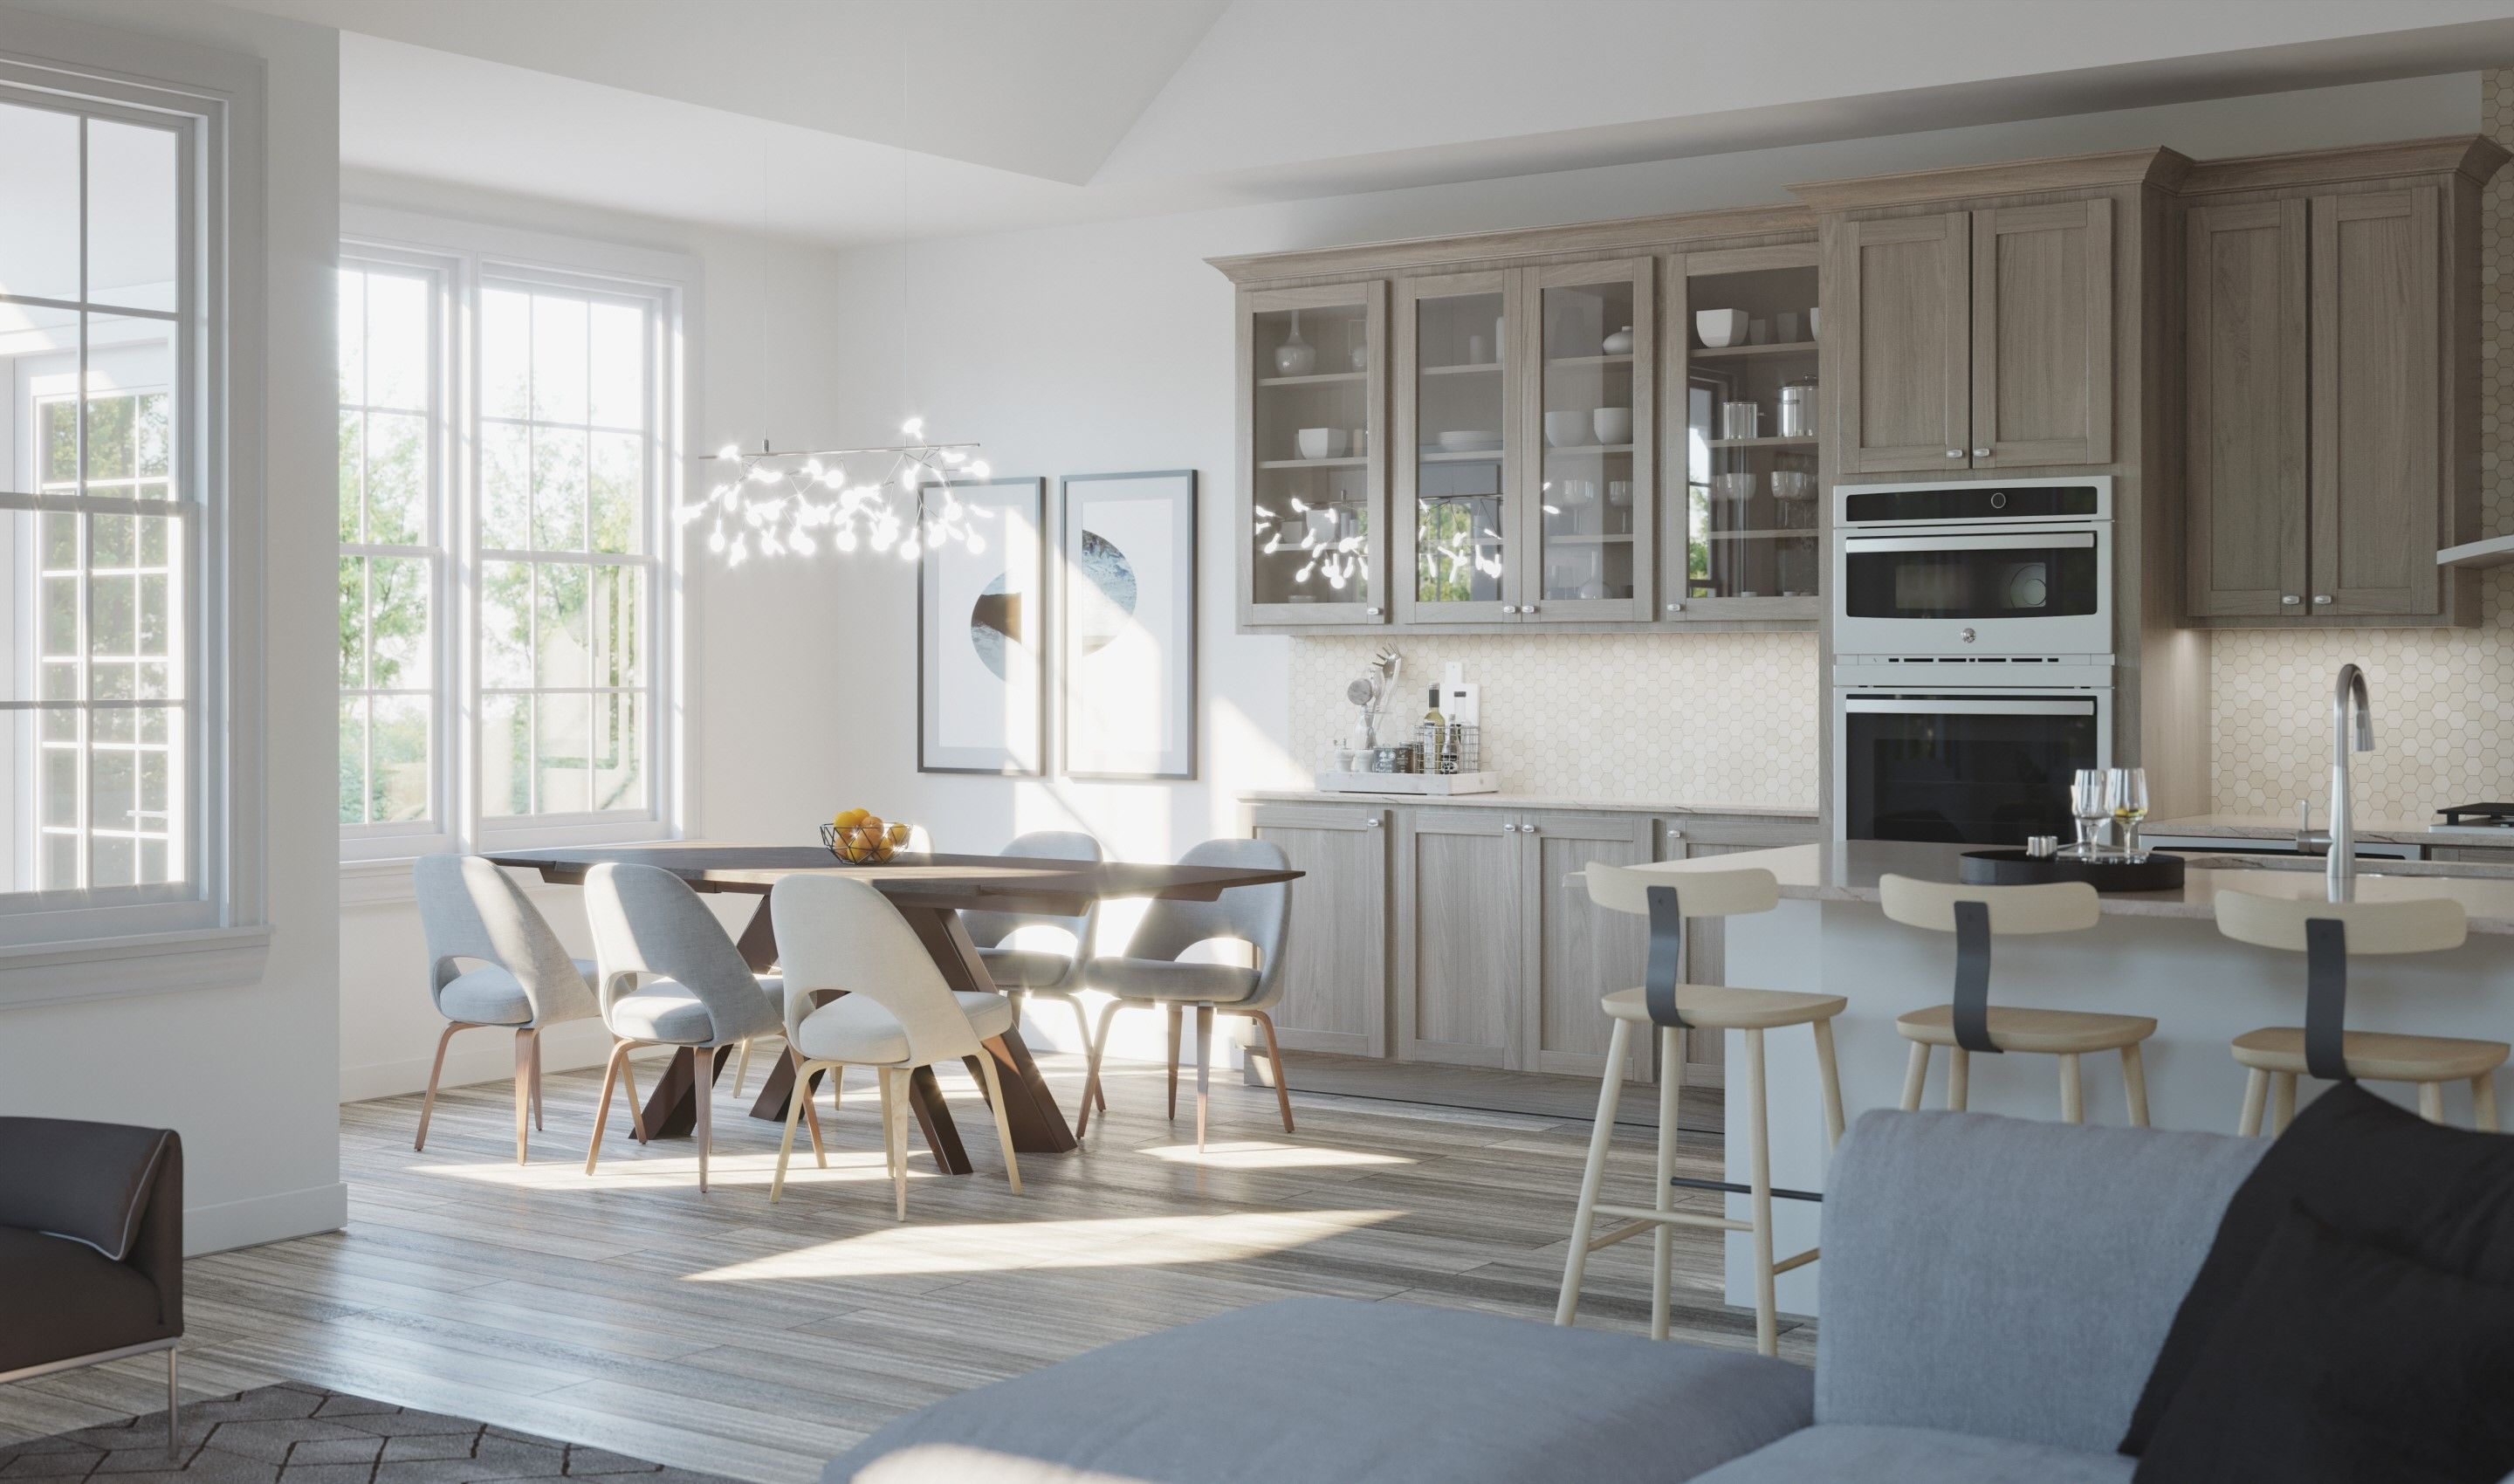 Kitchen featured in the Peterson By K. Hovnanian® Homes in Chicago, IL